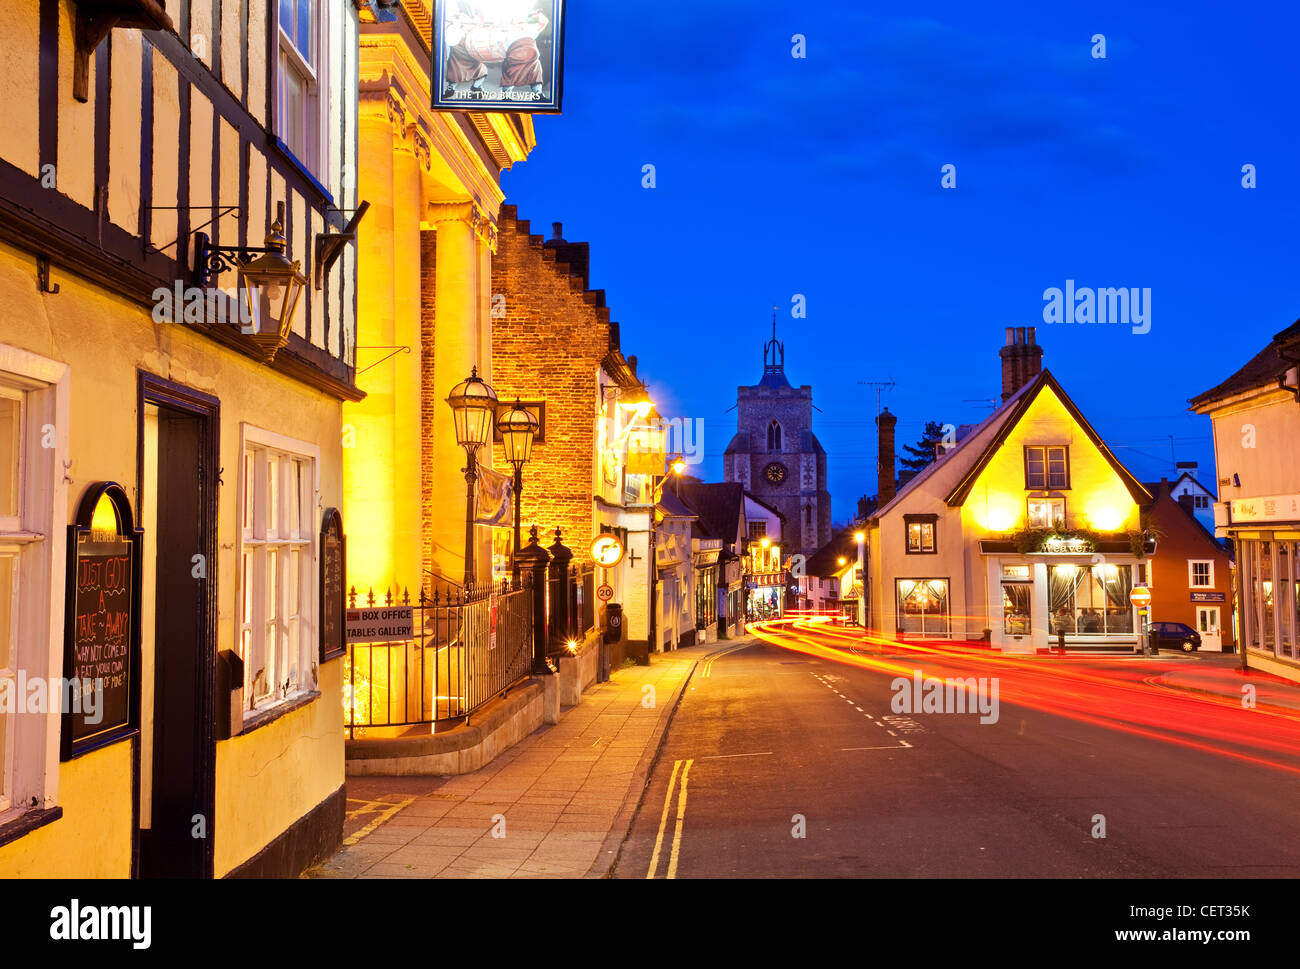 Light trails from cars in Diss town centre at dusk. - Stock Image